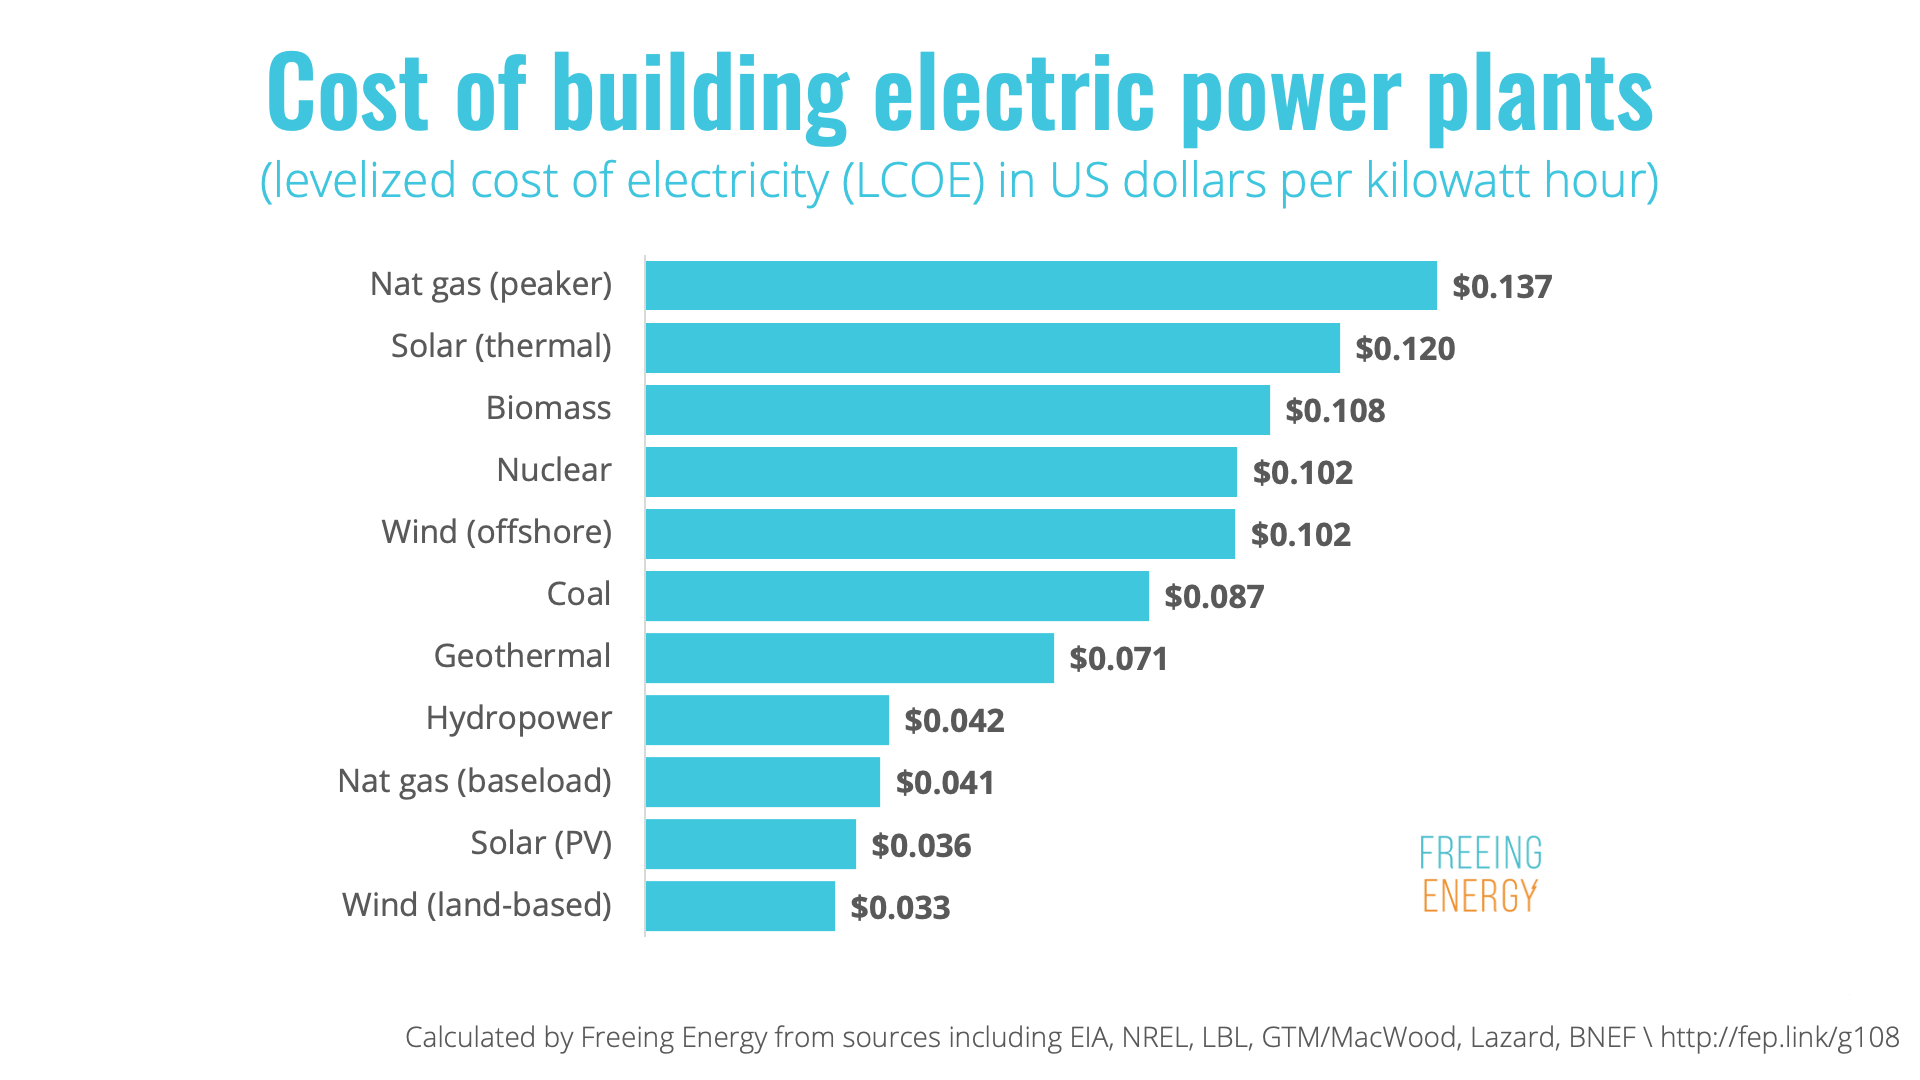 Cost of Building Electric Power Plants